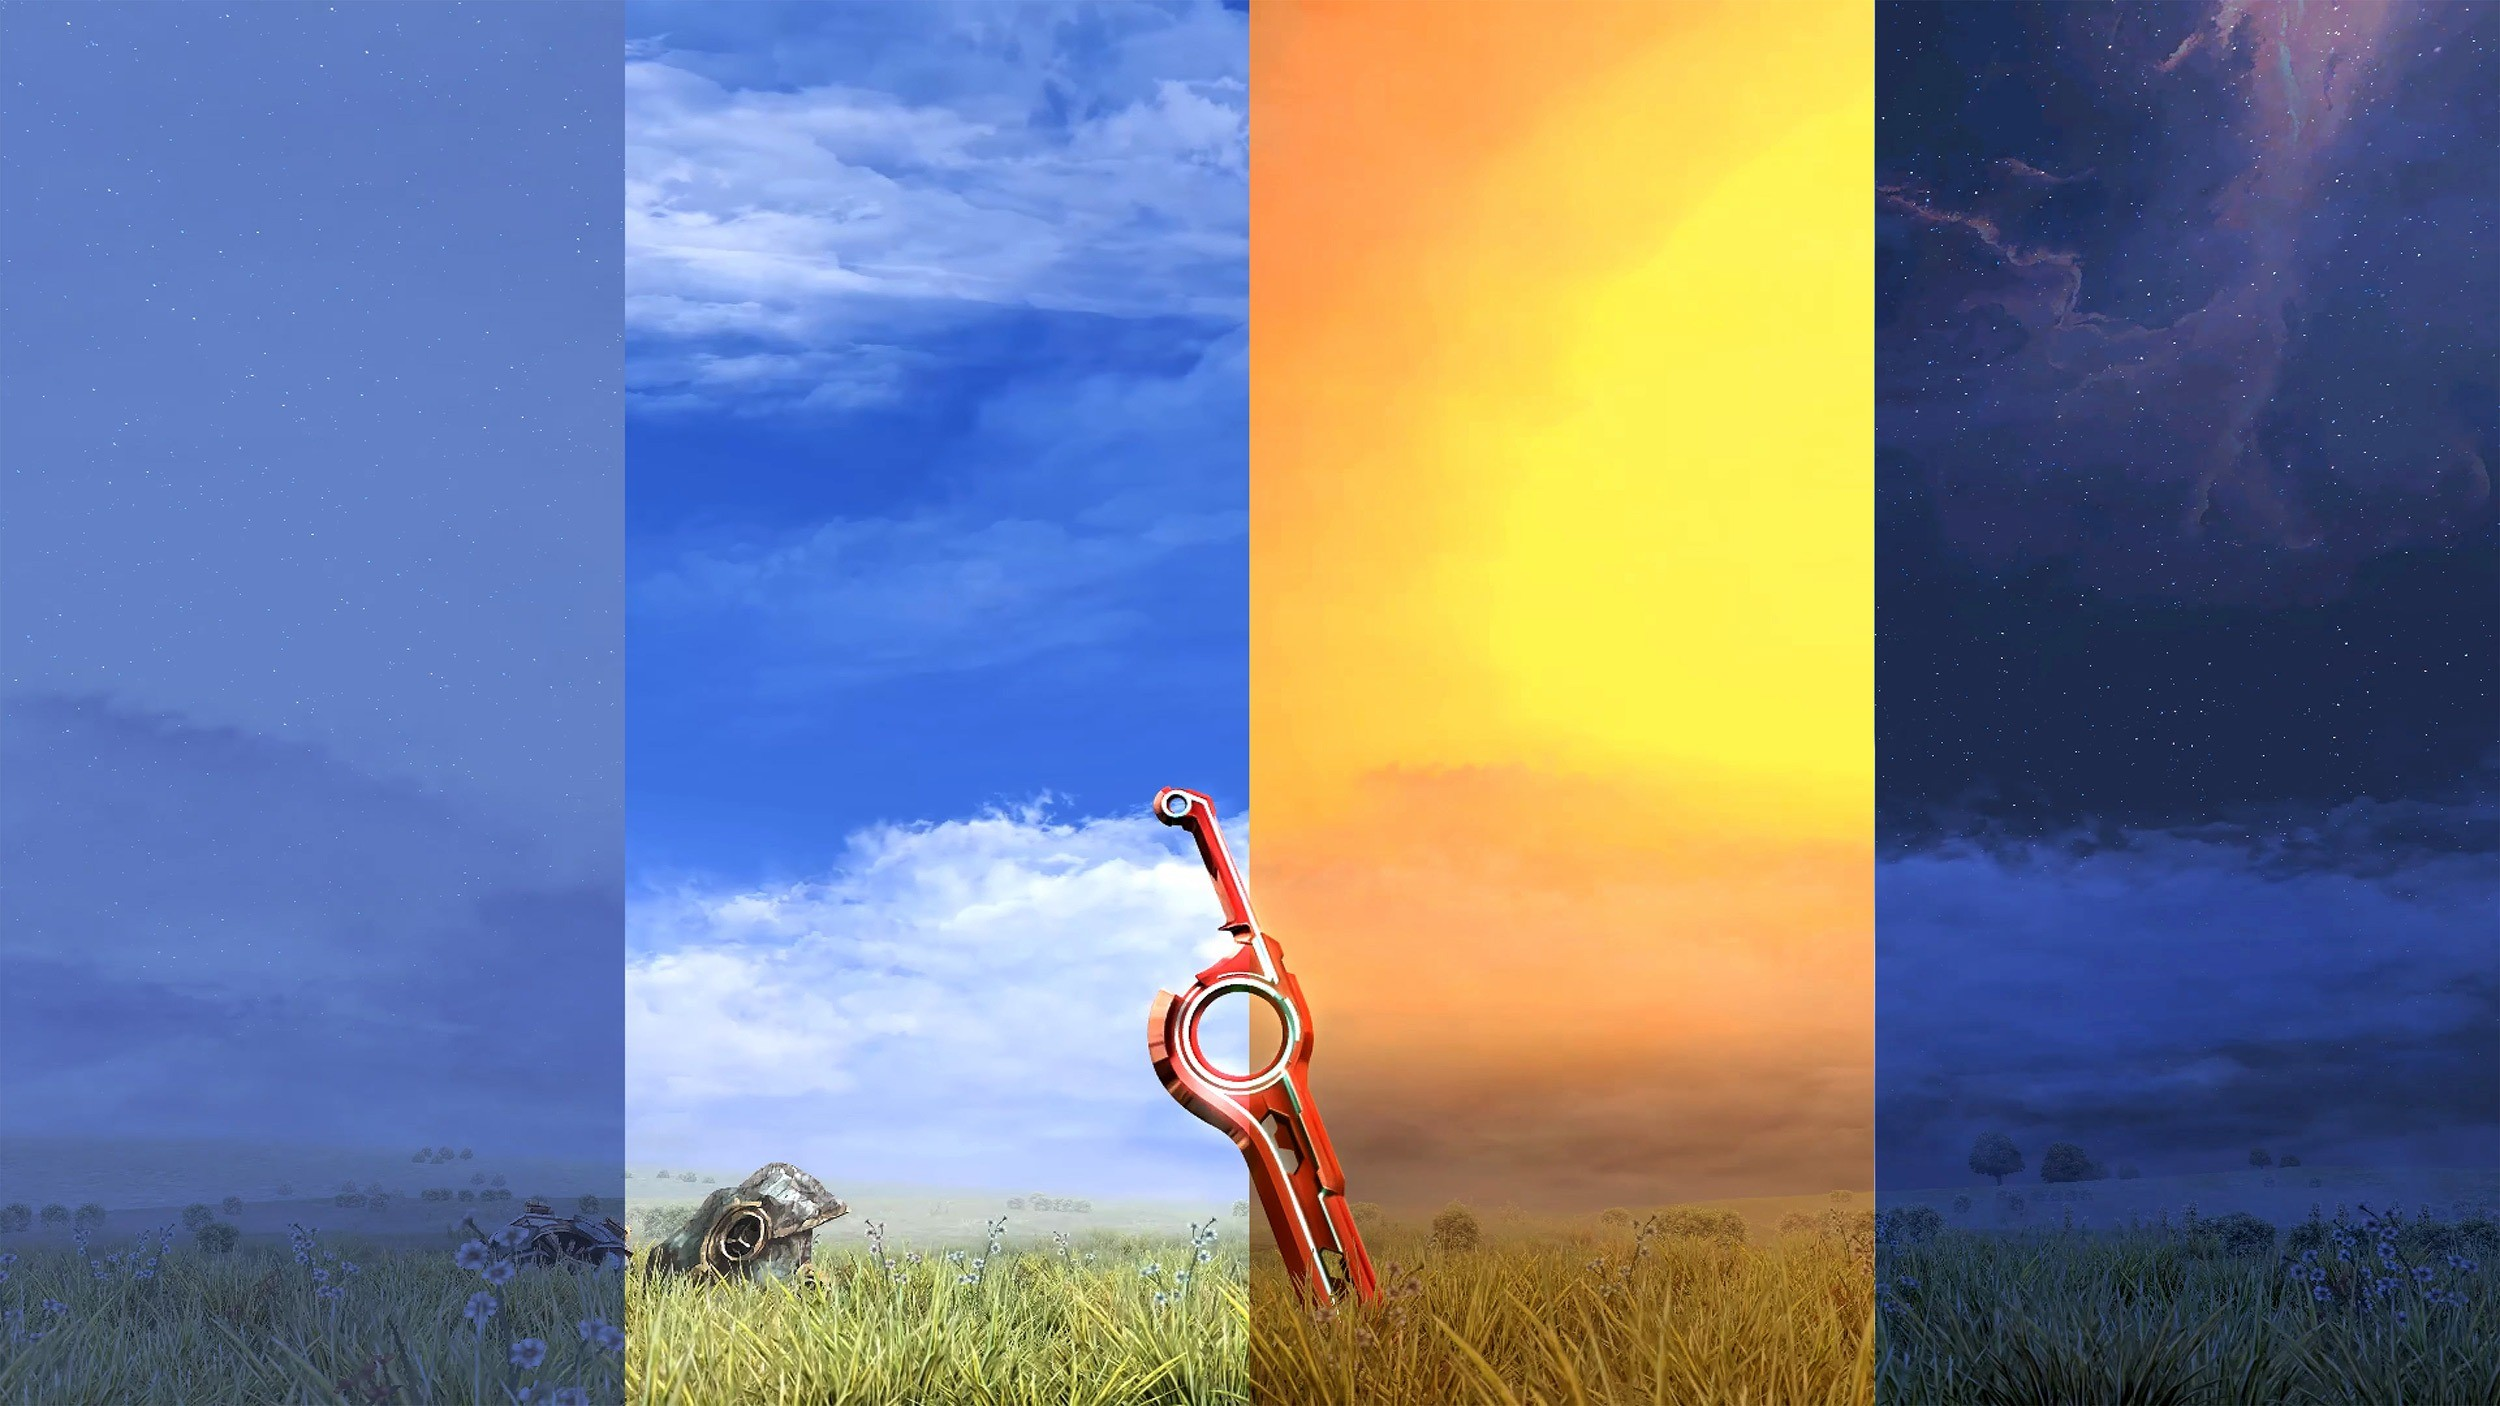 Day and night cycle of Xenoblade's Monado in a field